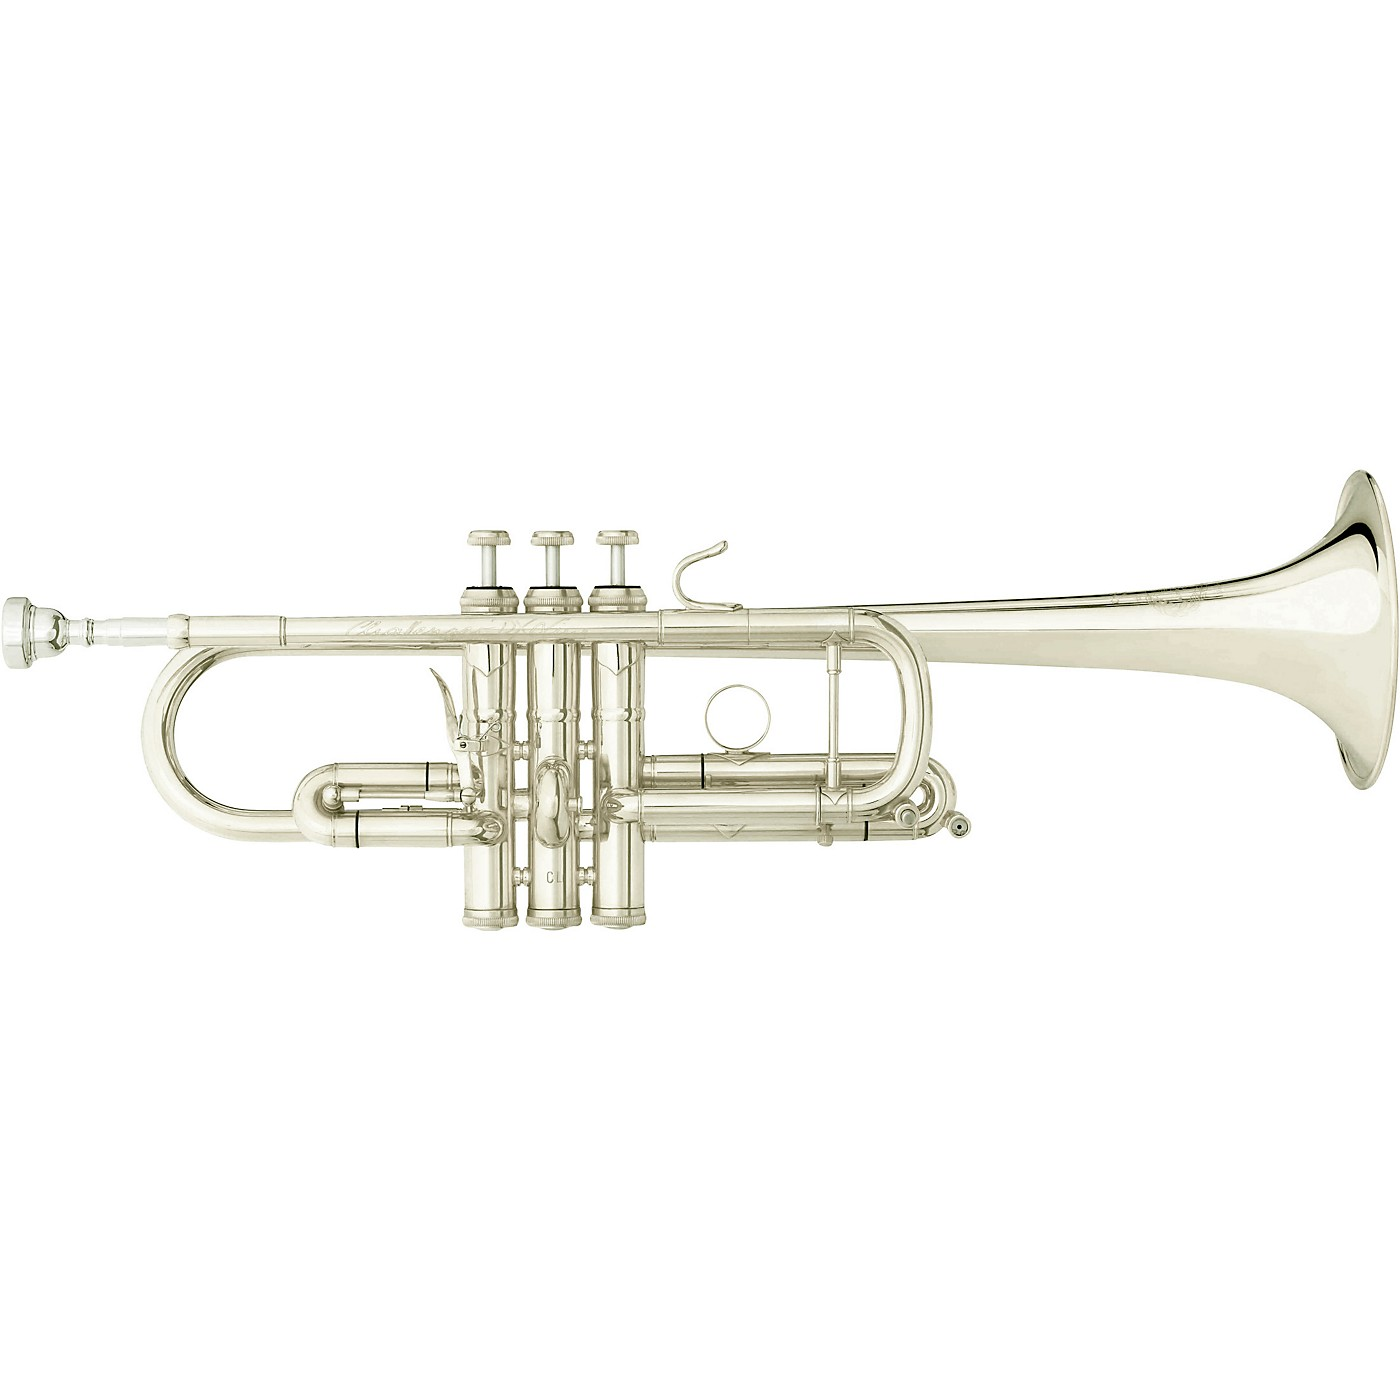 B&S DBXF Large Bore X-Series Bb Trumpet with Fixed Bell thumbnail